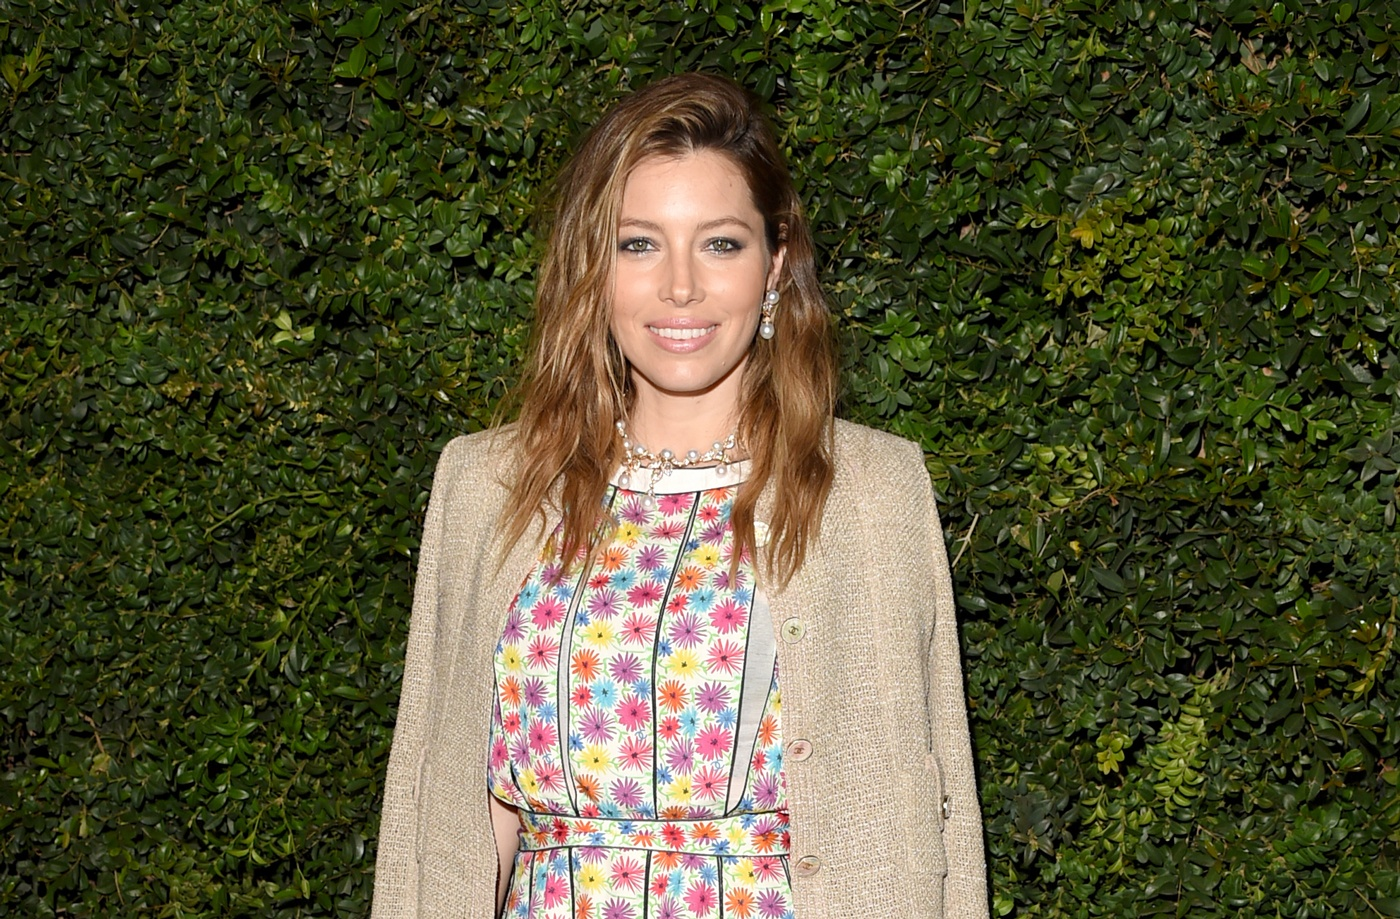 Thumbnail for Jessica Biel's glutes workout alone is Emmy-worthy viewing material